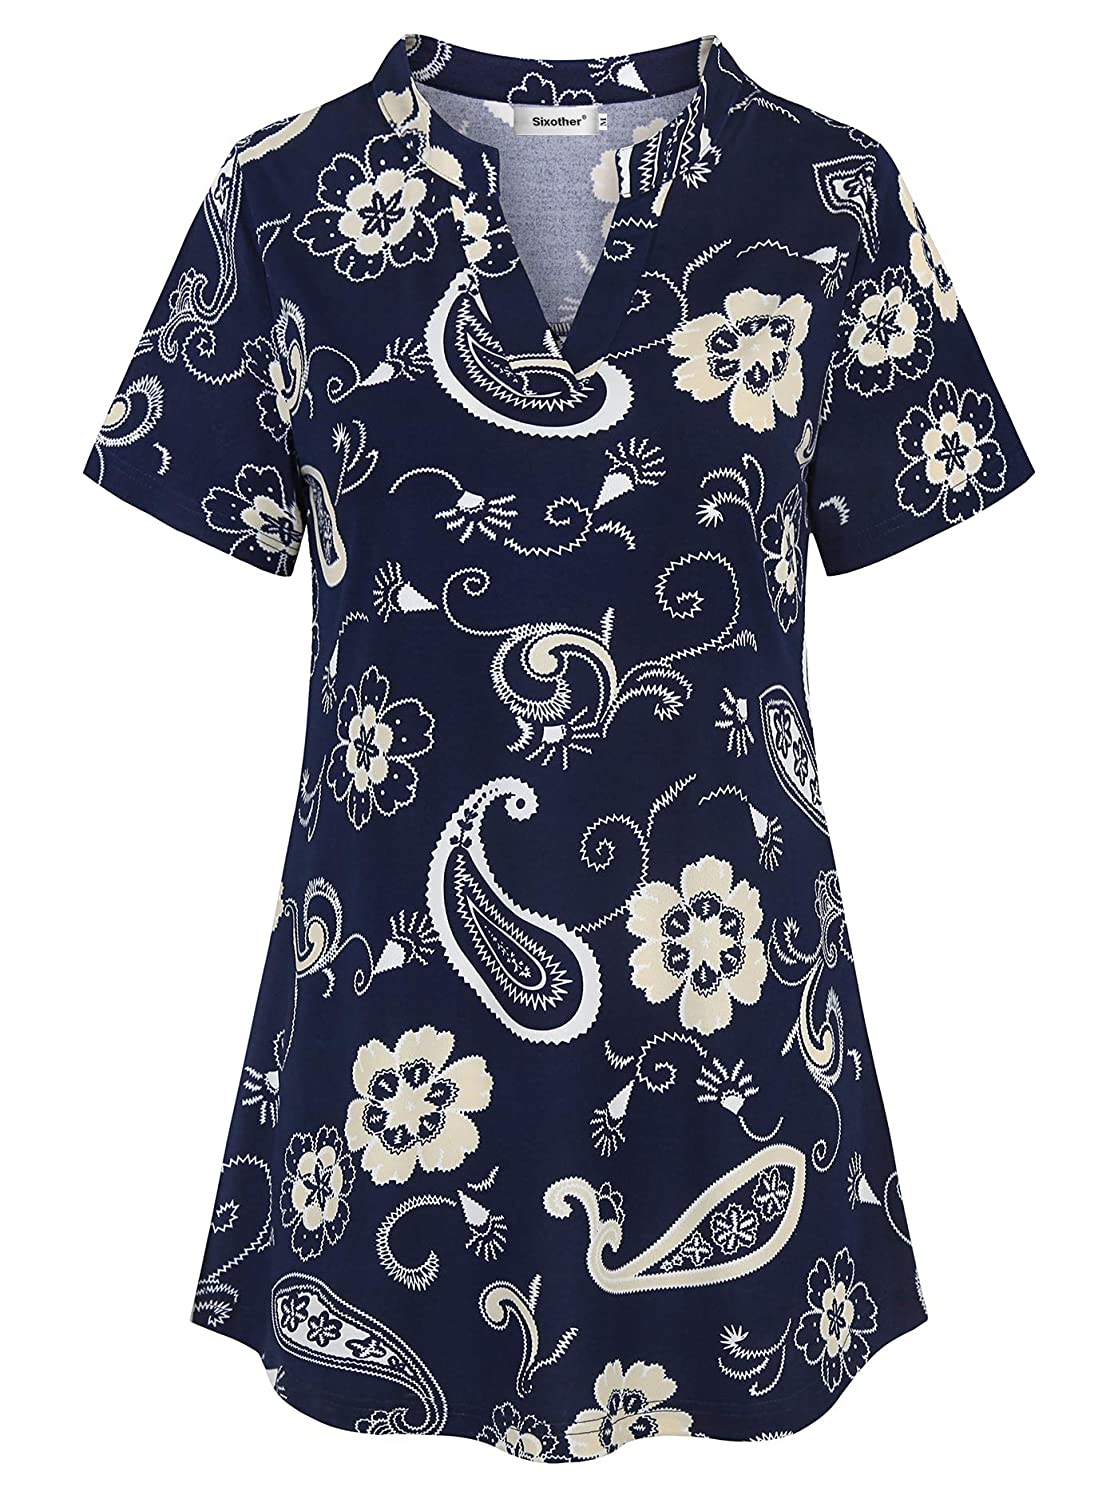 Sixother Summer Henley V Neck Short Sleeve Flowy Floral Women Tunic Shirt Casual